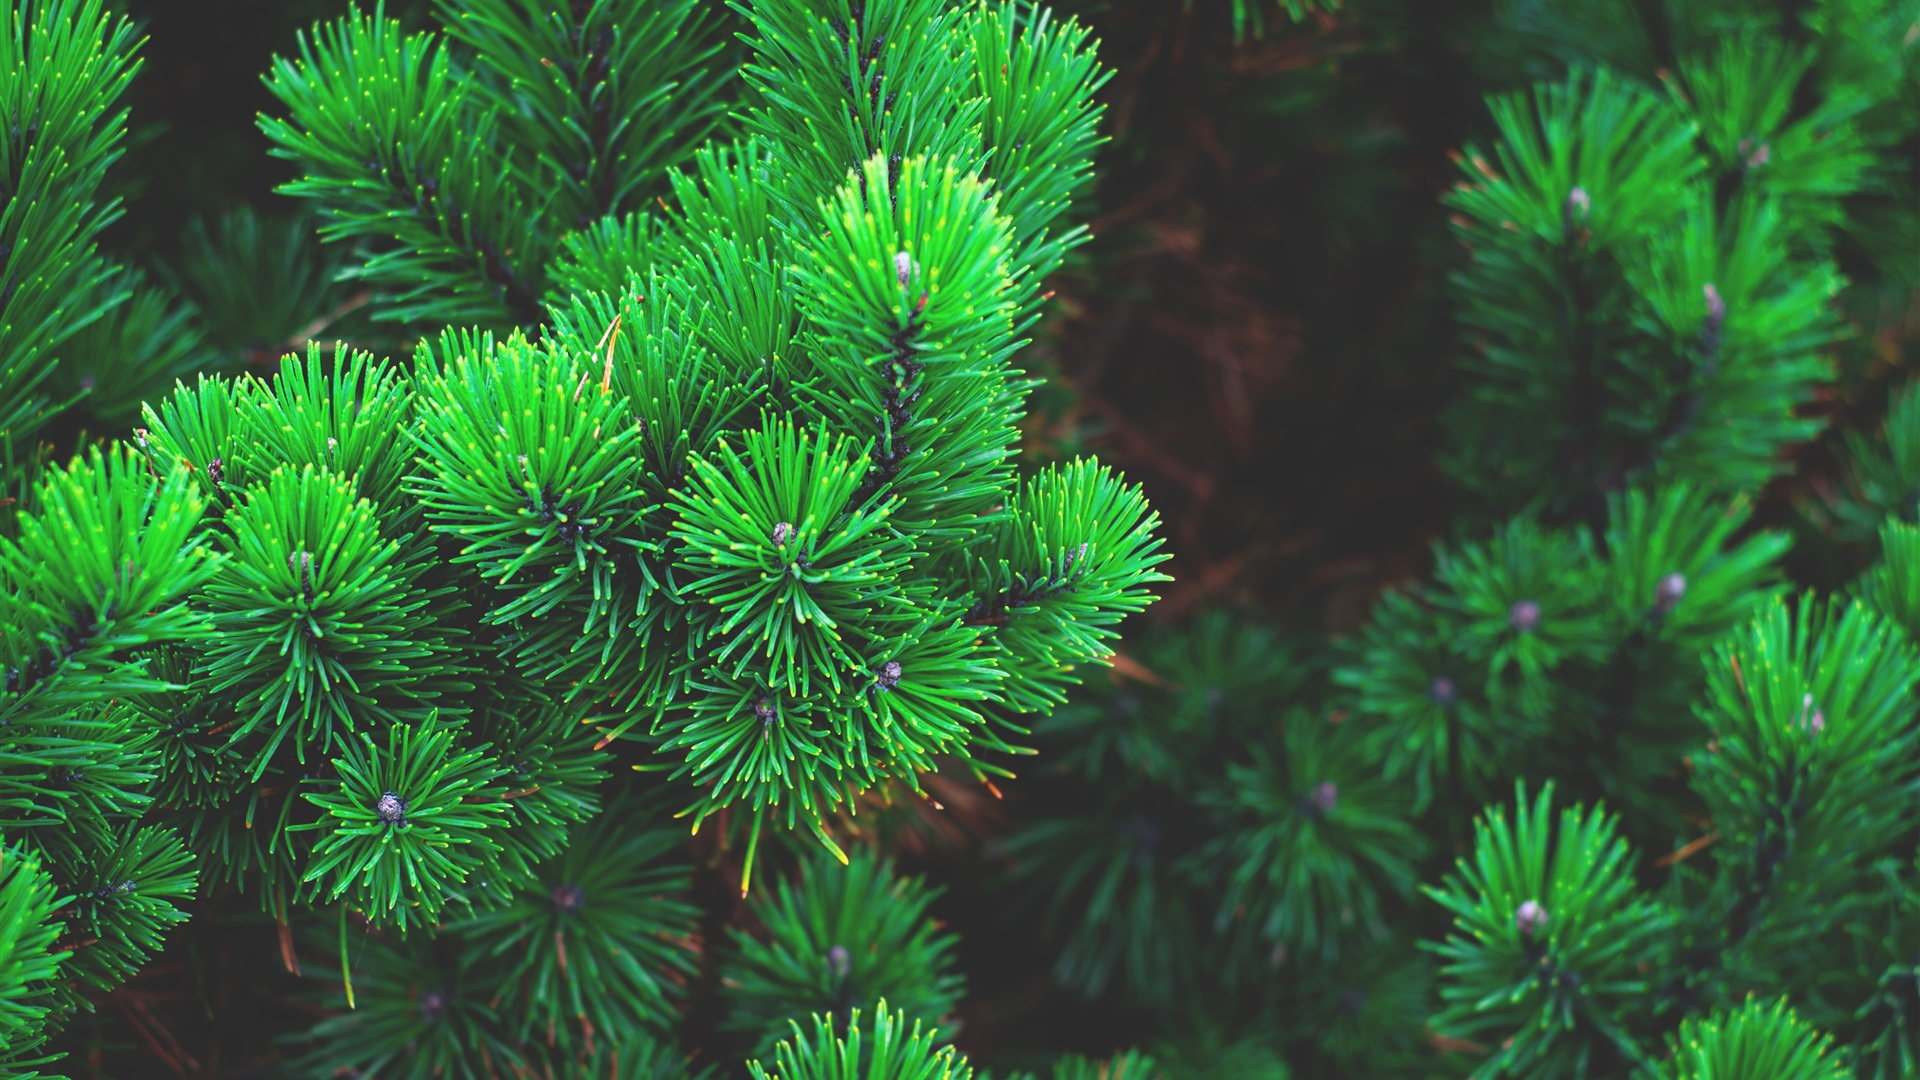 green pine branches wallpaper 1920x1080 full hd